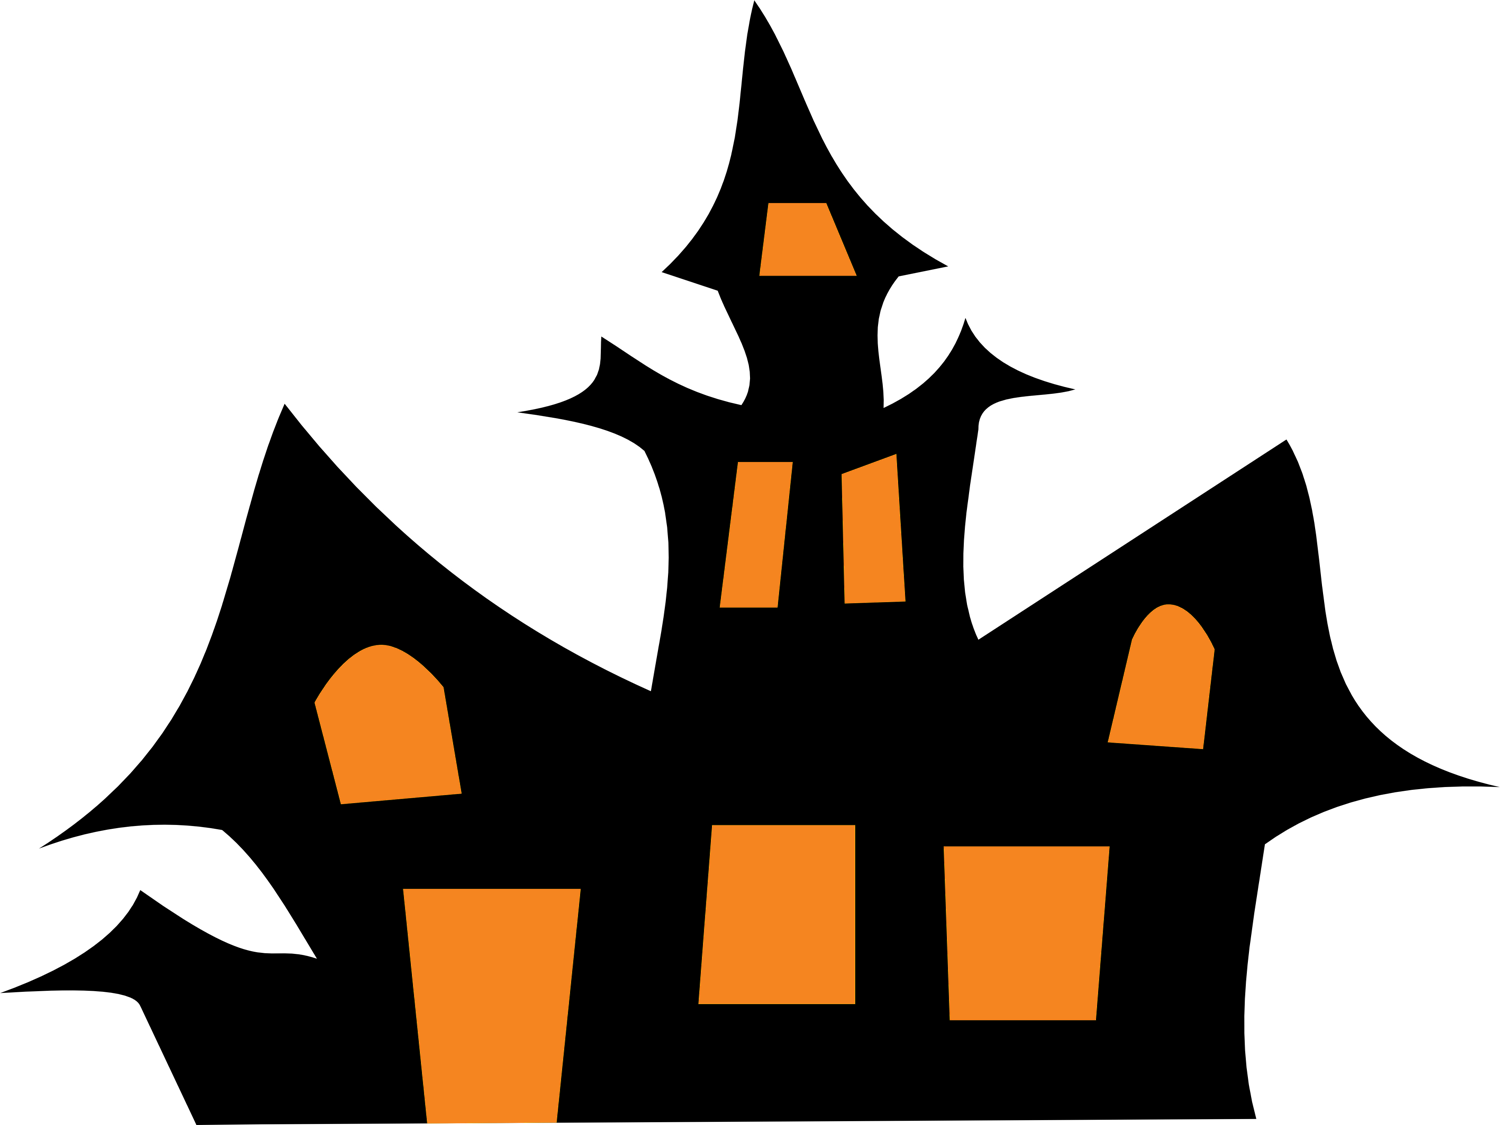 Haunted House Clipart Haunted House Clip Art Image.